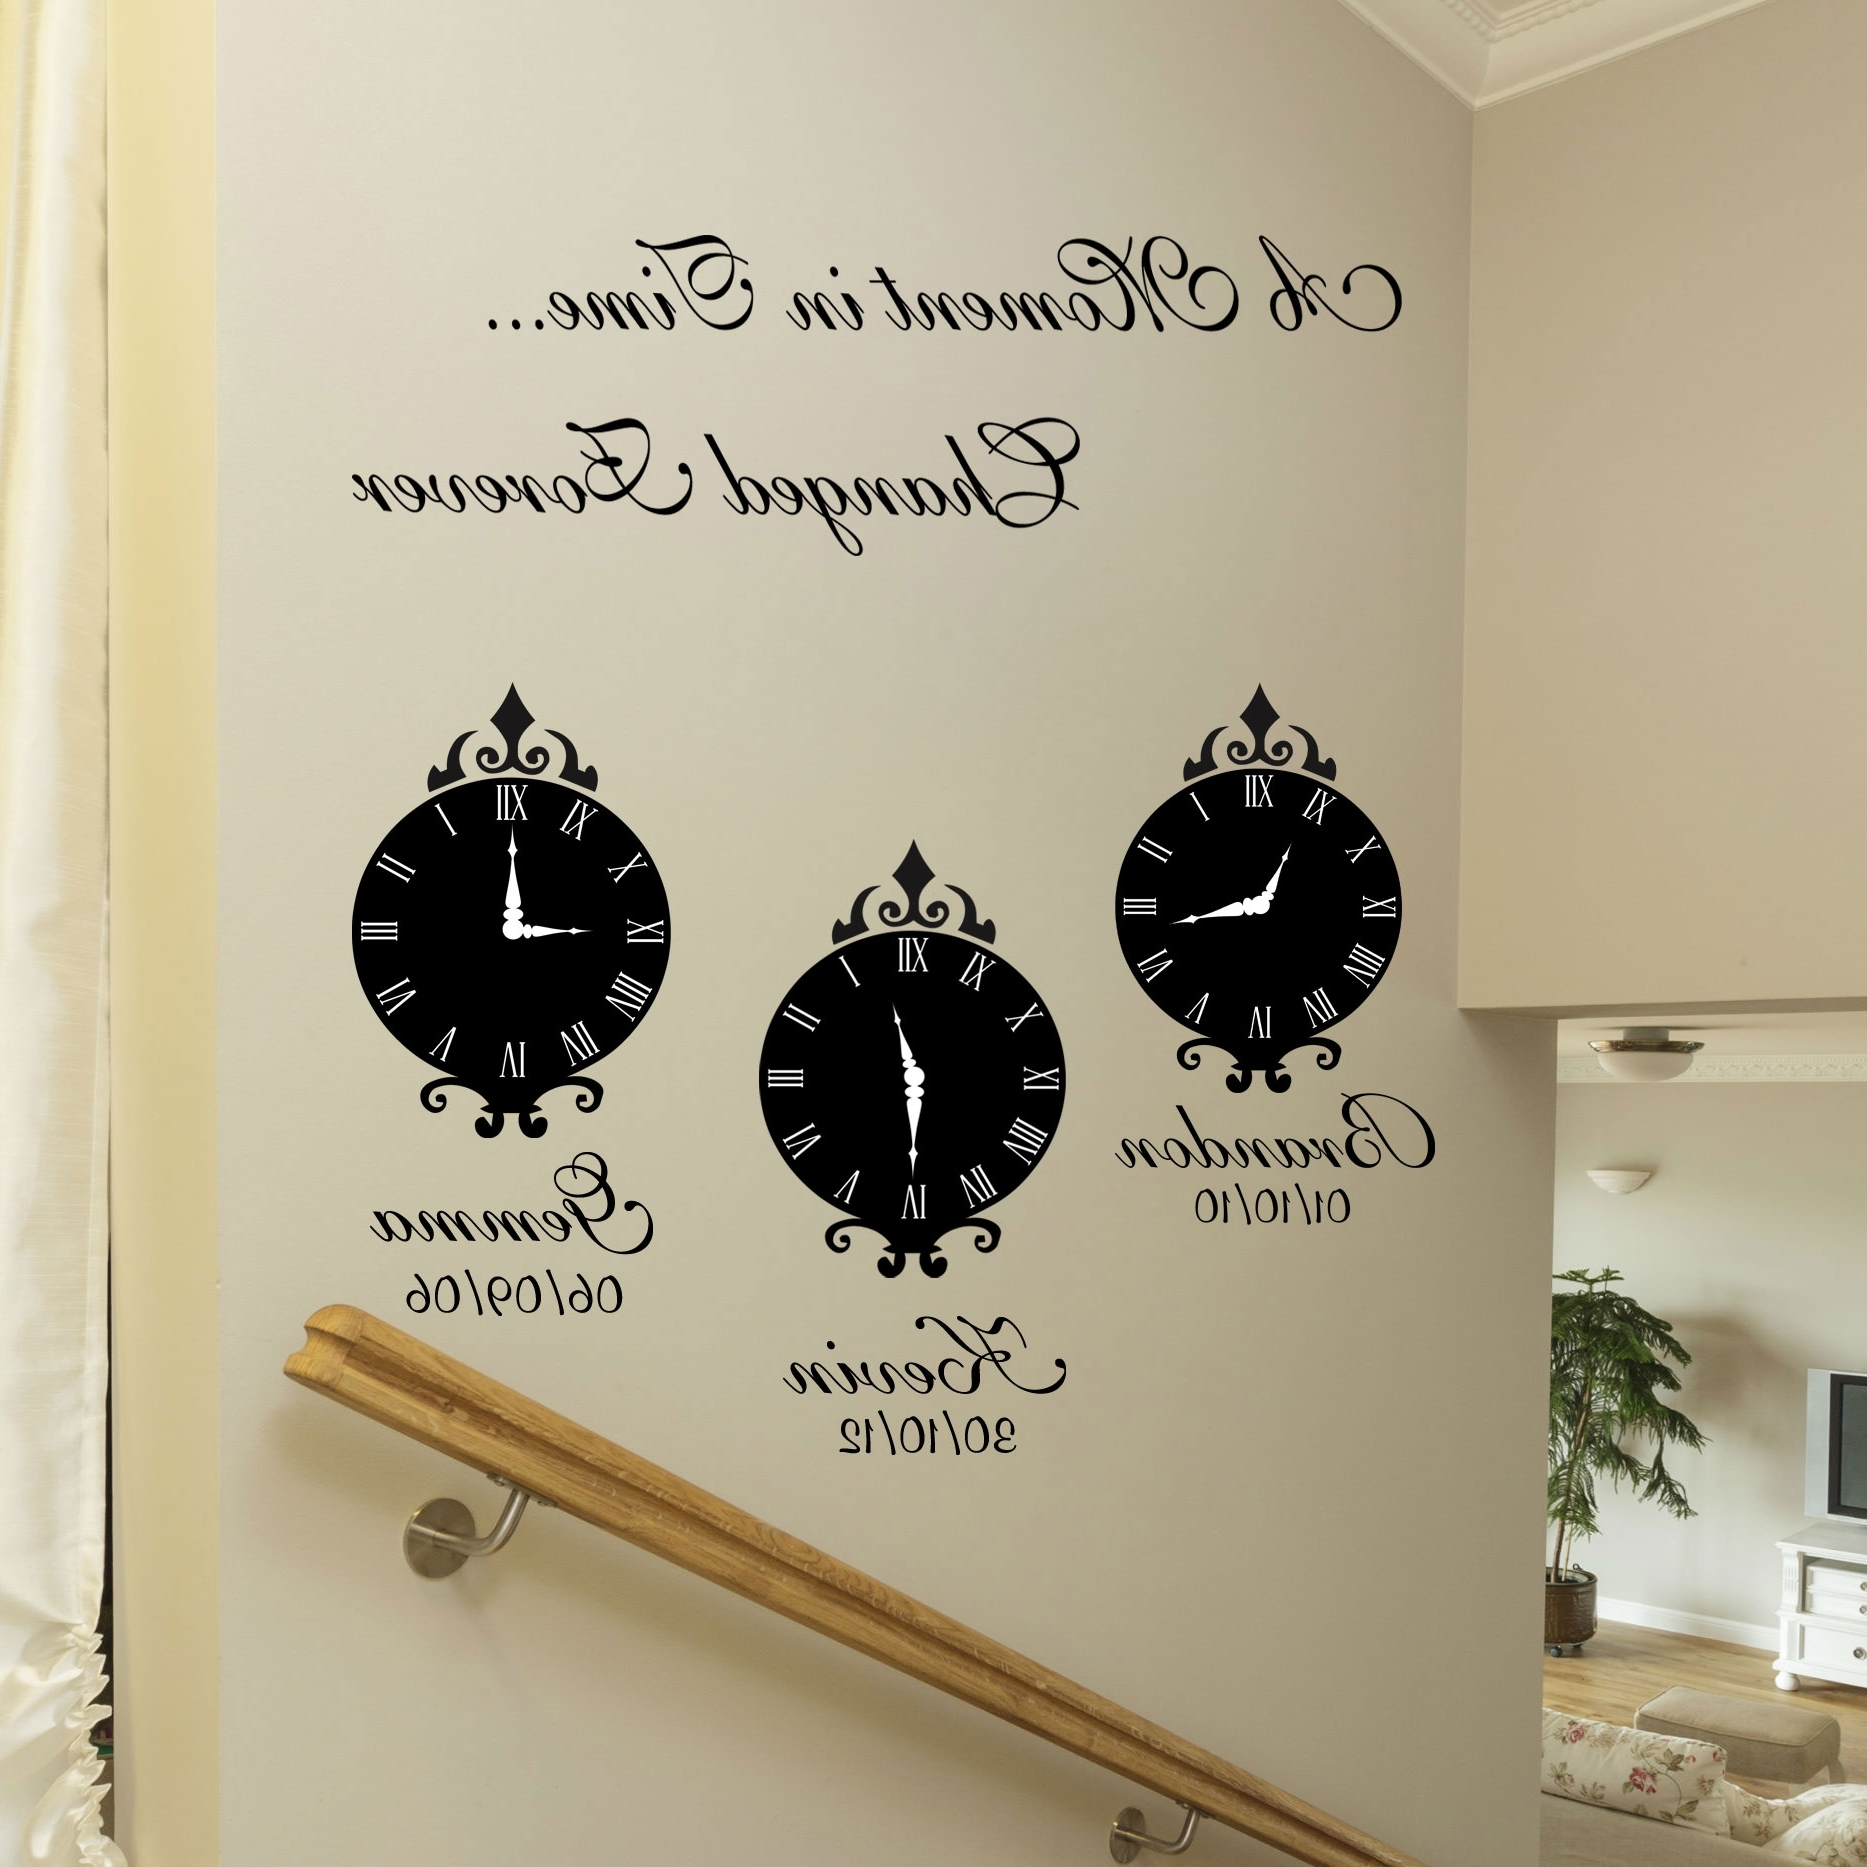 Most Popular A Moment In Time Wall Art Stickers Regarding Family Wall Art (View 8 of 15)